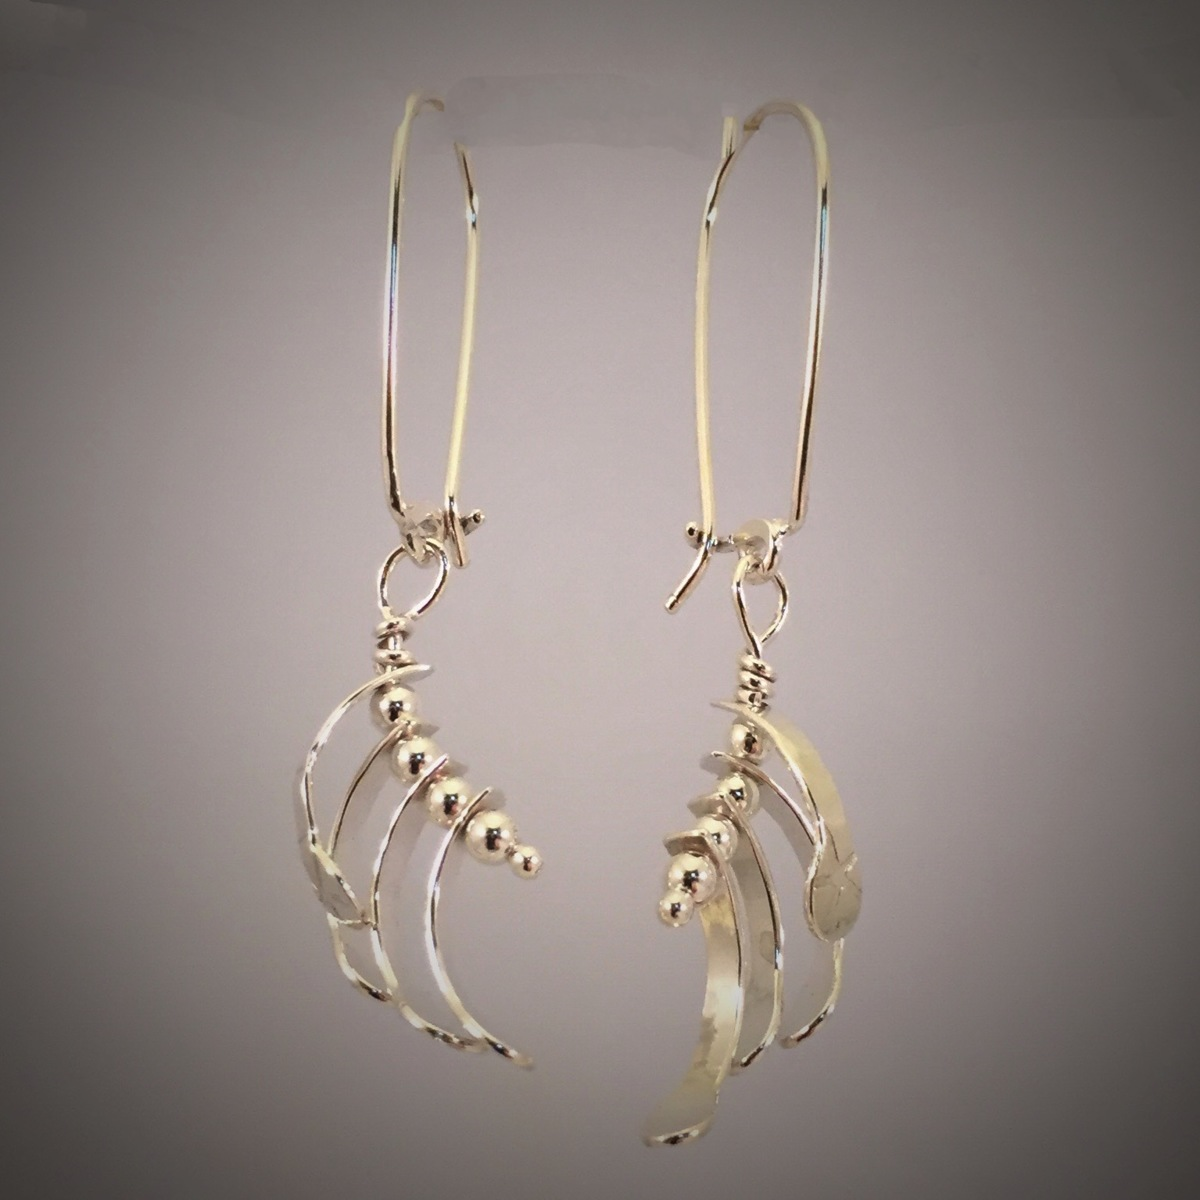 Kinetic Silver Curved Whirligig Earrings  (large view)